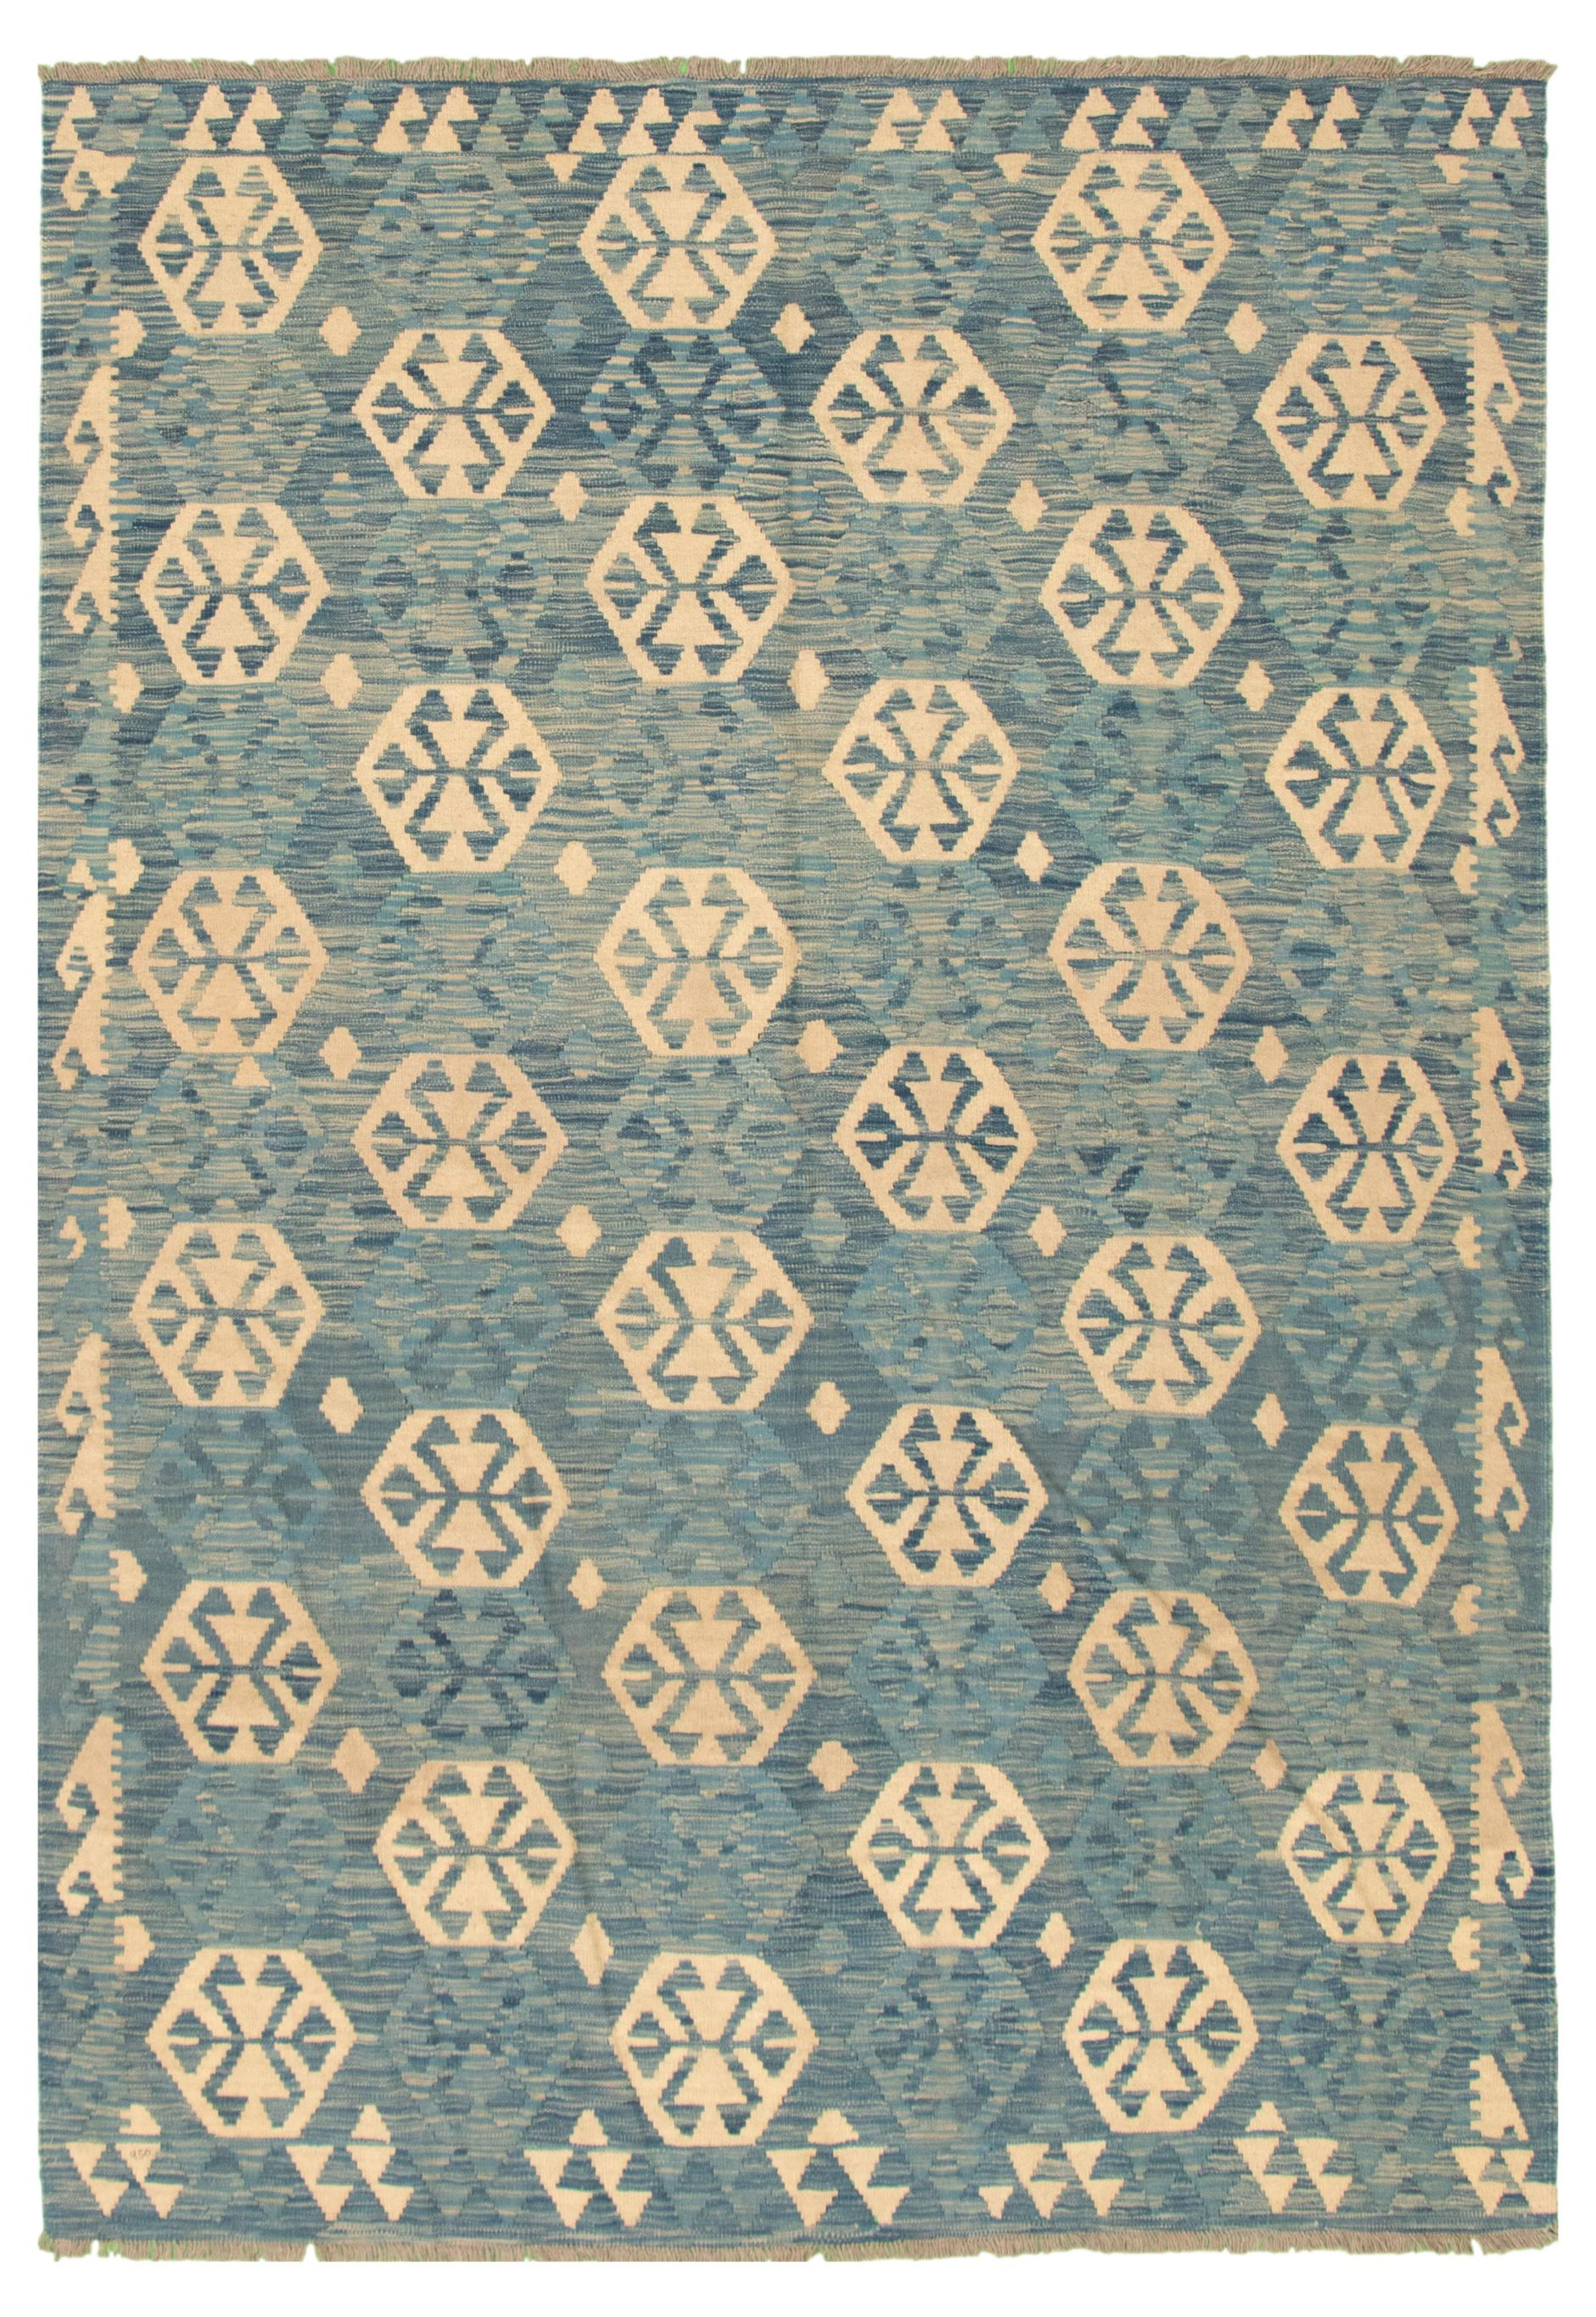 """Hand woven Old Style Navy Blue Wool Kilim 6'8"""" x 9'8"""" Size: 6'8"""" x 9'8"""""""